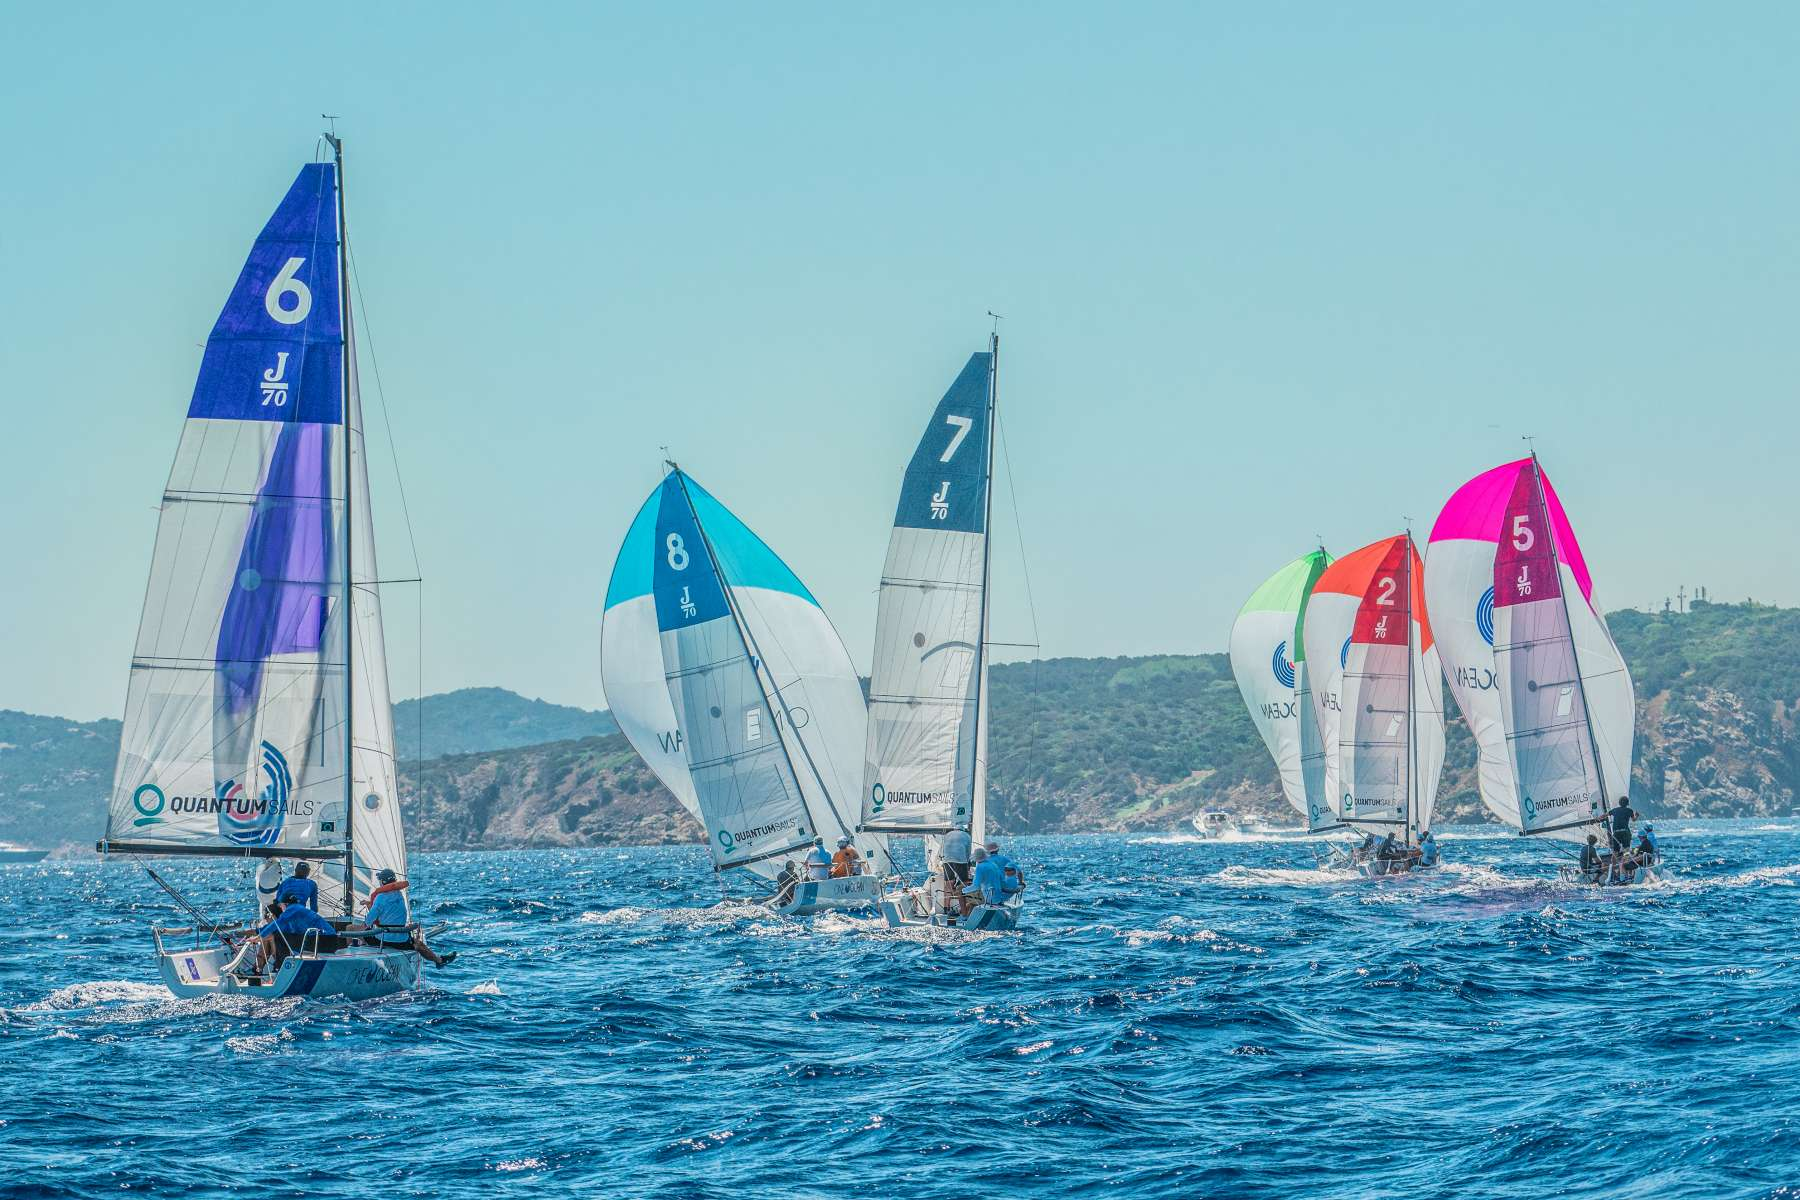 Alessandro Maria Rinaldi wins the 26th edition of the YCCS Members Championship - NEWS - Yacht Club Costa Smeralda